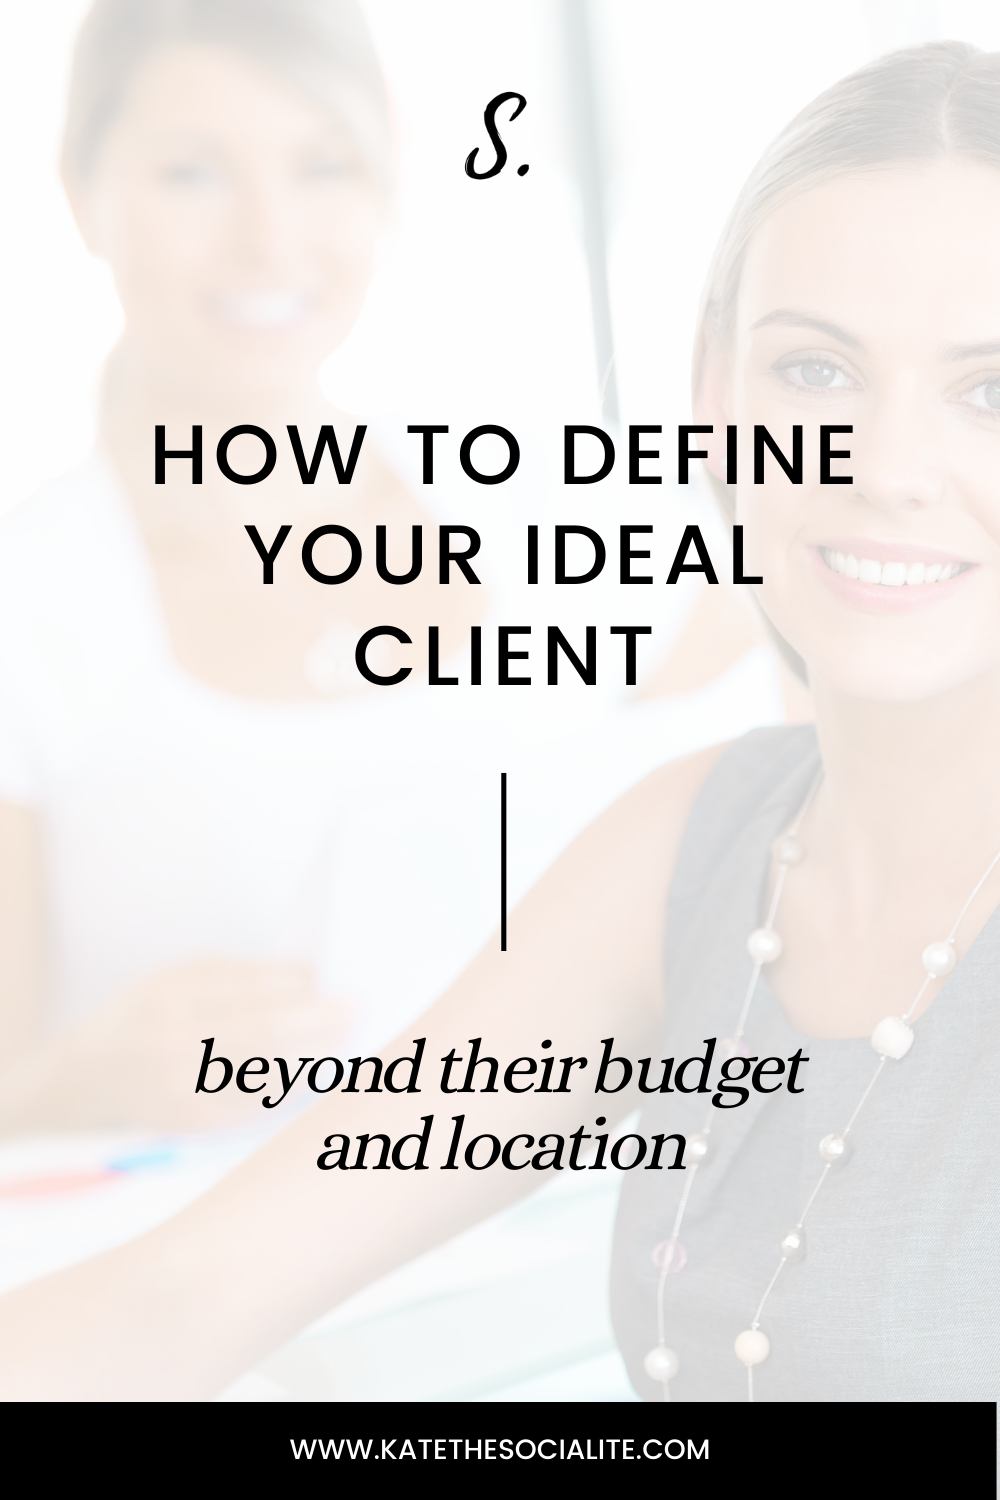 How To Define Your Ideal Client Beyond Their Budget Location Kate The Socialite Ideal Client Budgeting Target Client